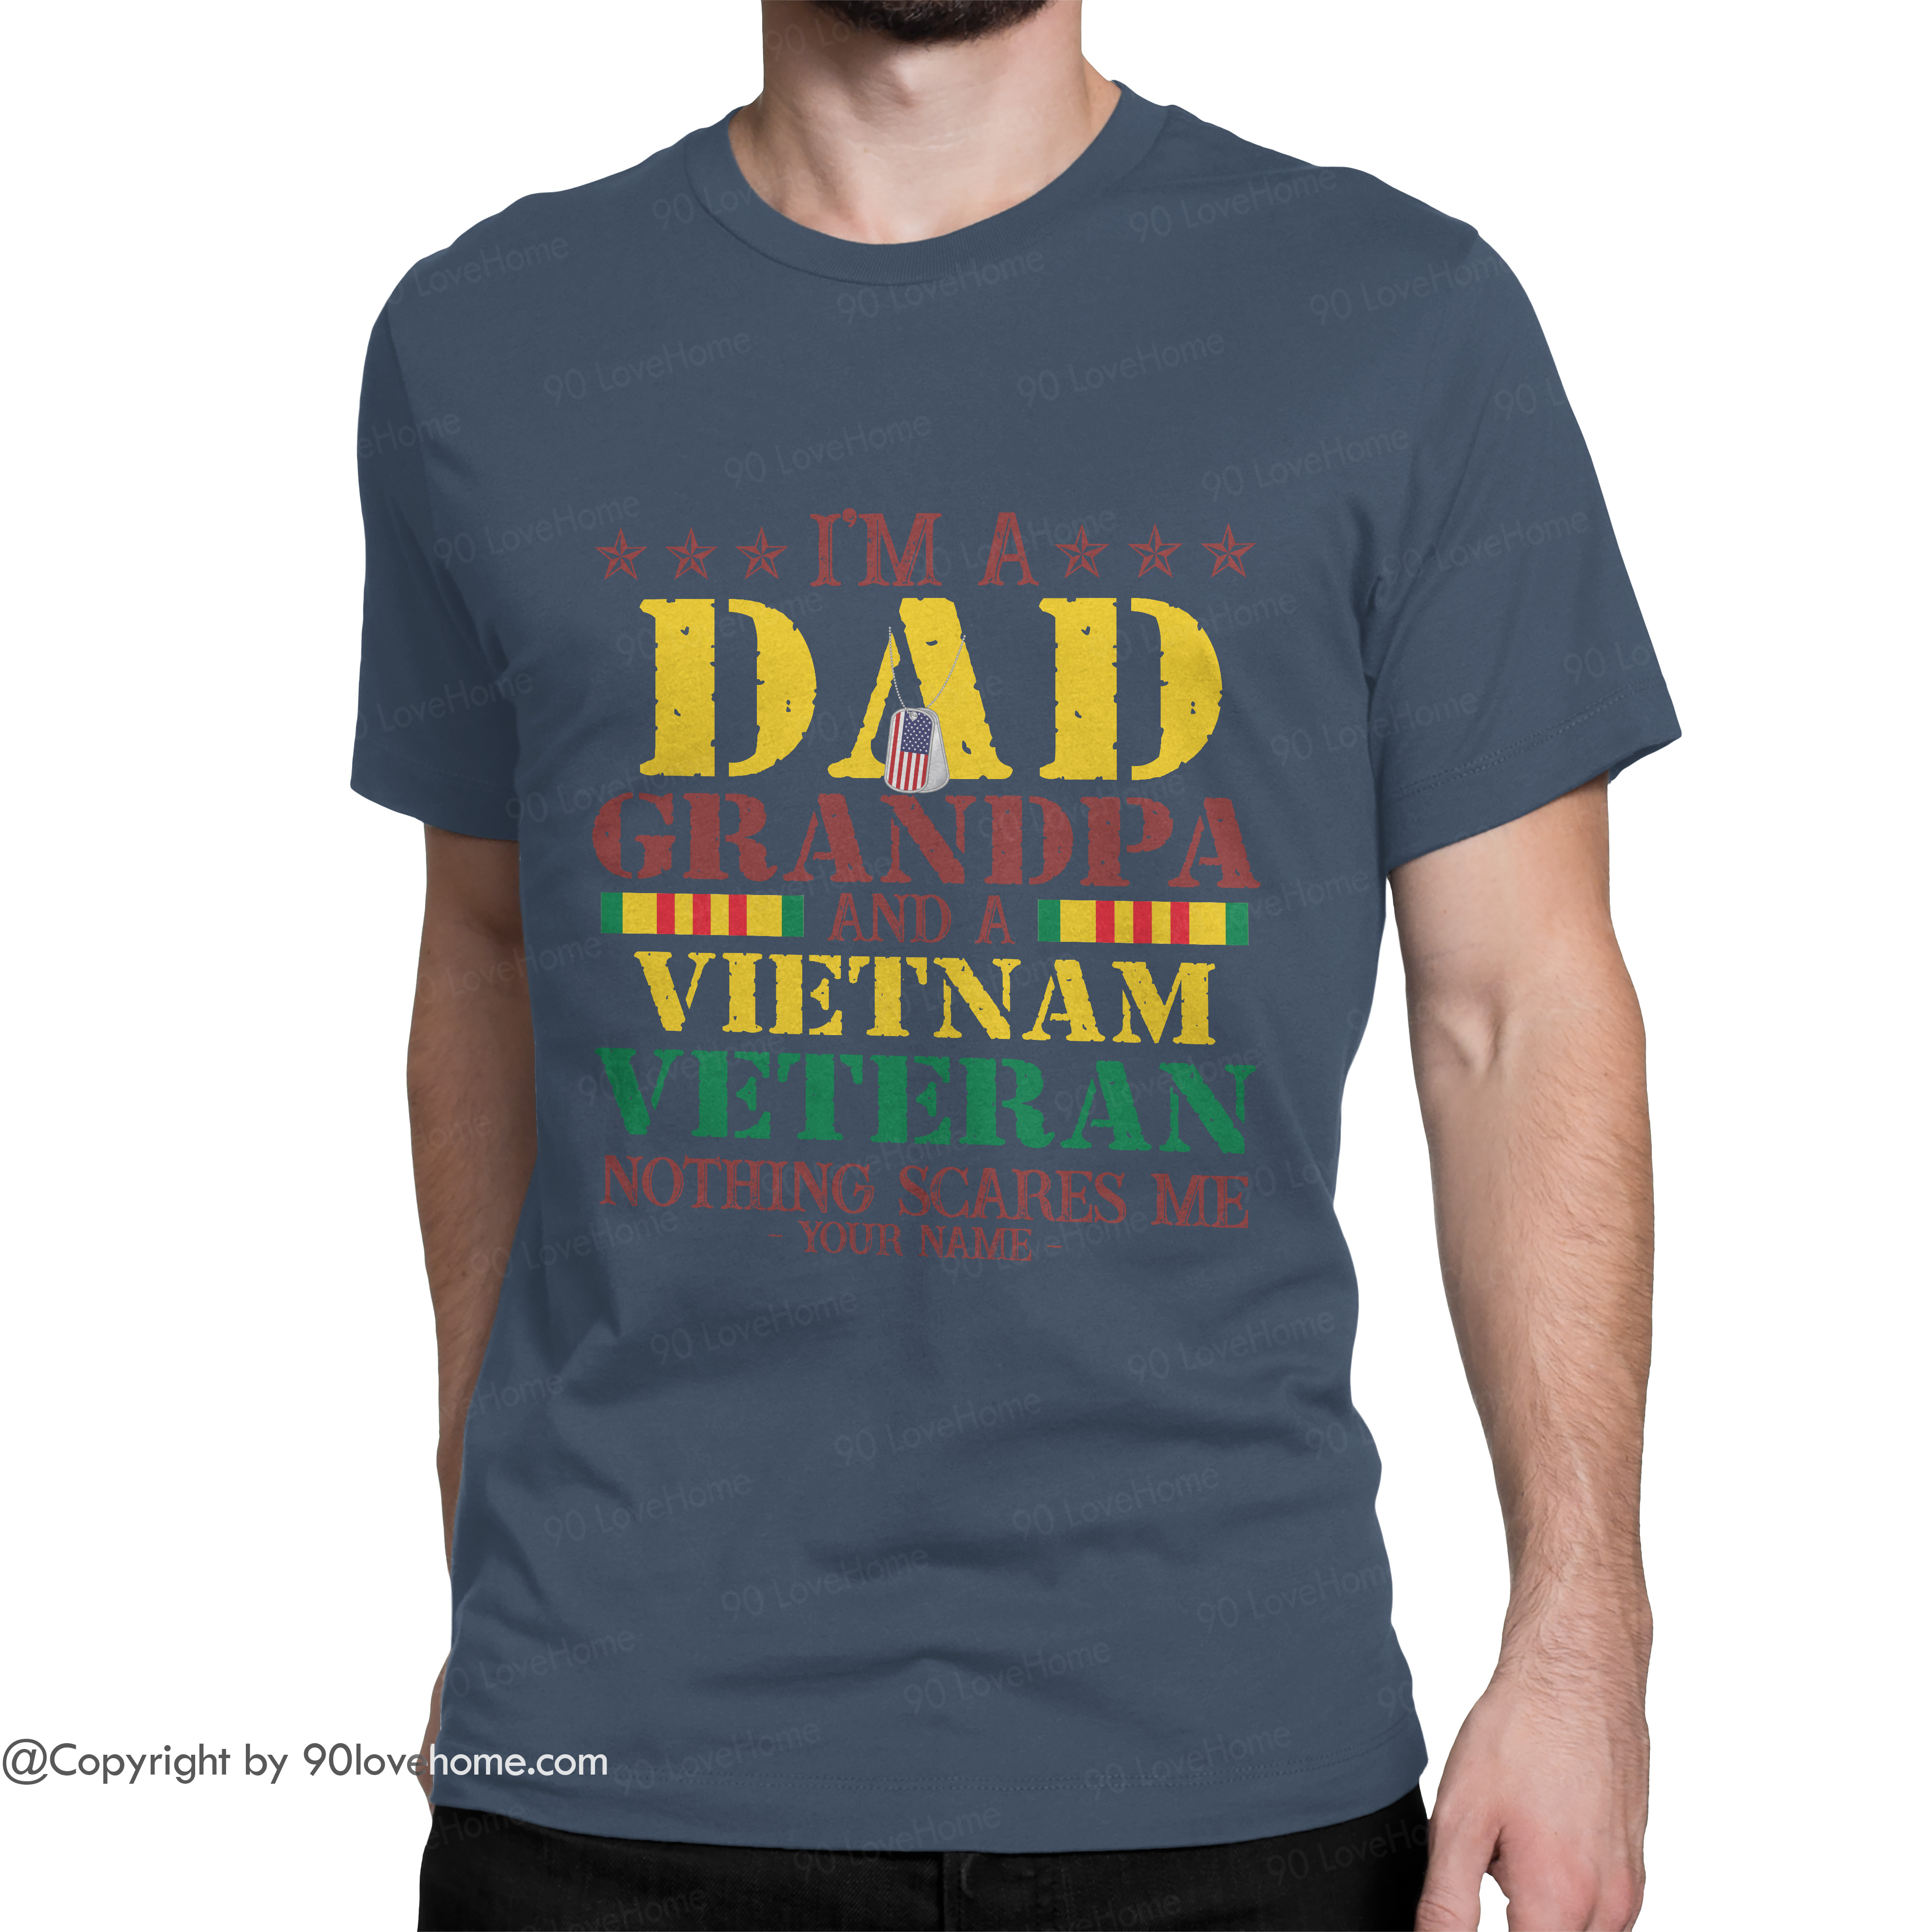 Dad T Shirt Customized I'm A Dad Grandpa Vietnam Veteran Unisex T-shirt US Flag Army Dad Tee 4th of July Father's Day Birthday Gift For Grandpa Dad 90LoveHome